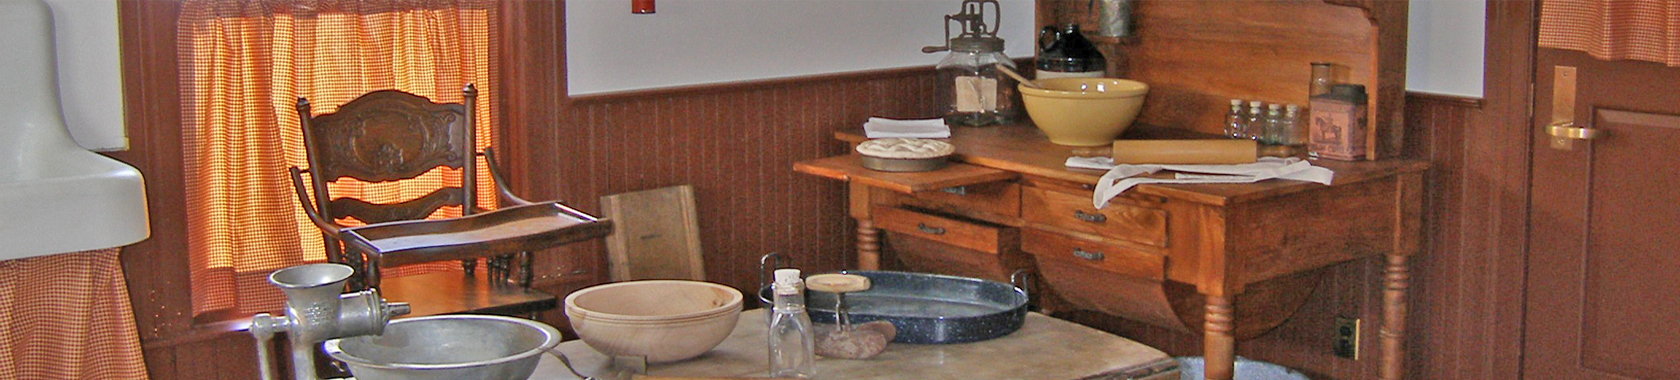 Homeschool Happenings: Time in a 100 Year Old House